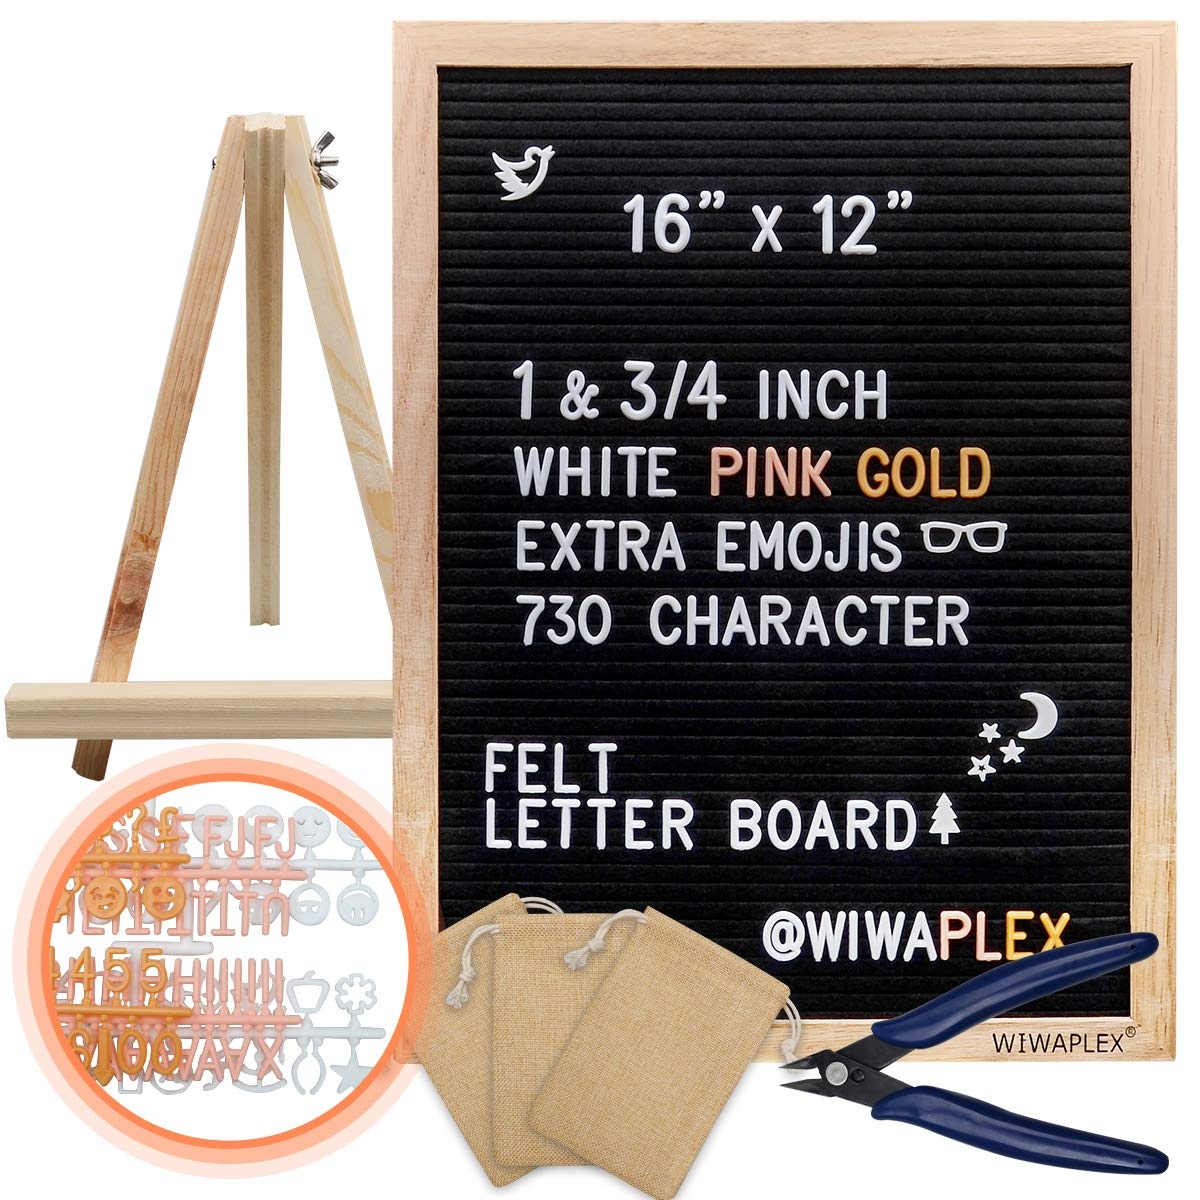 WIWAPLEX Black Felt Letter Board, Word Board Sign, 16 x 12 inch Changeable Letter Board with 730 Plastic Message Board Letters Numbers Symbols Emoji, Wooden Tripod Stand, Scissors, 3 Free Storage Bags